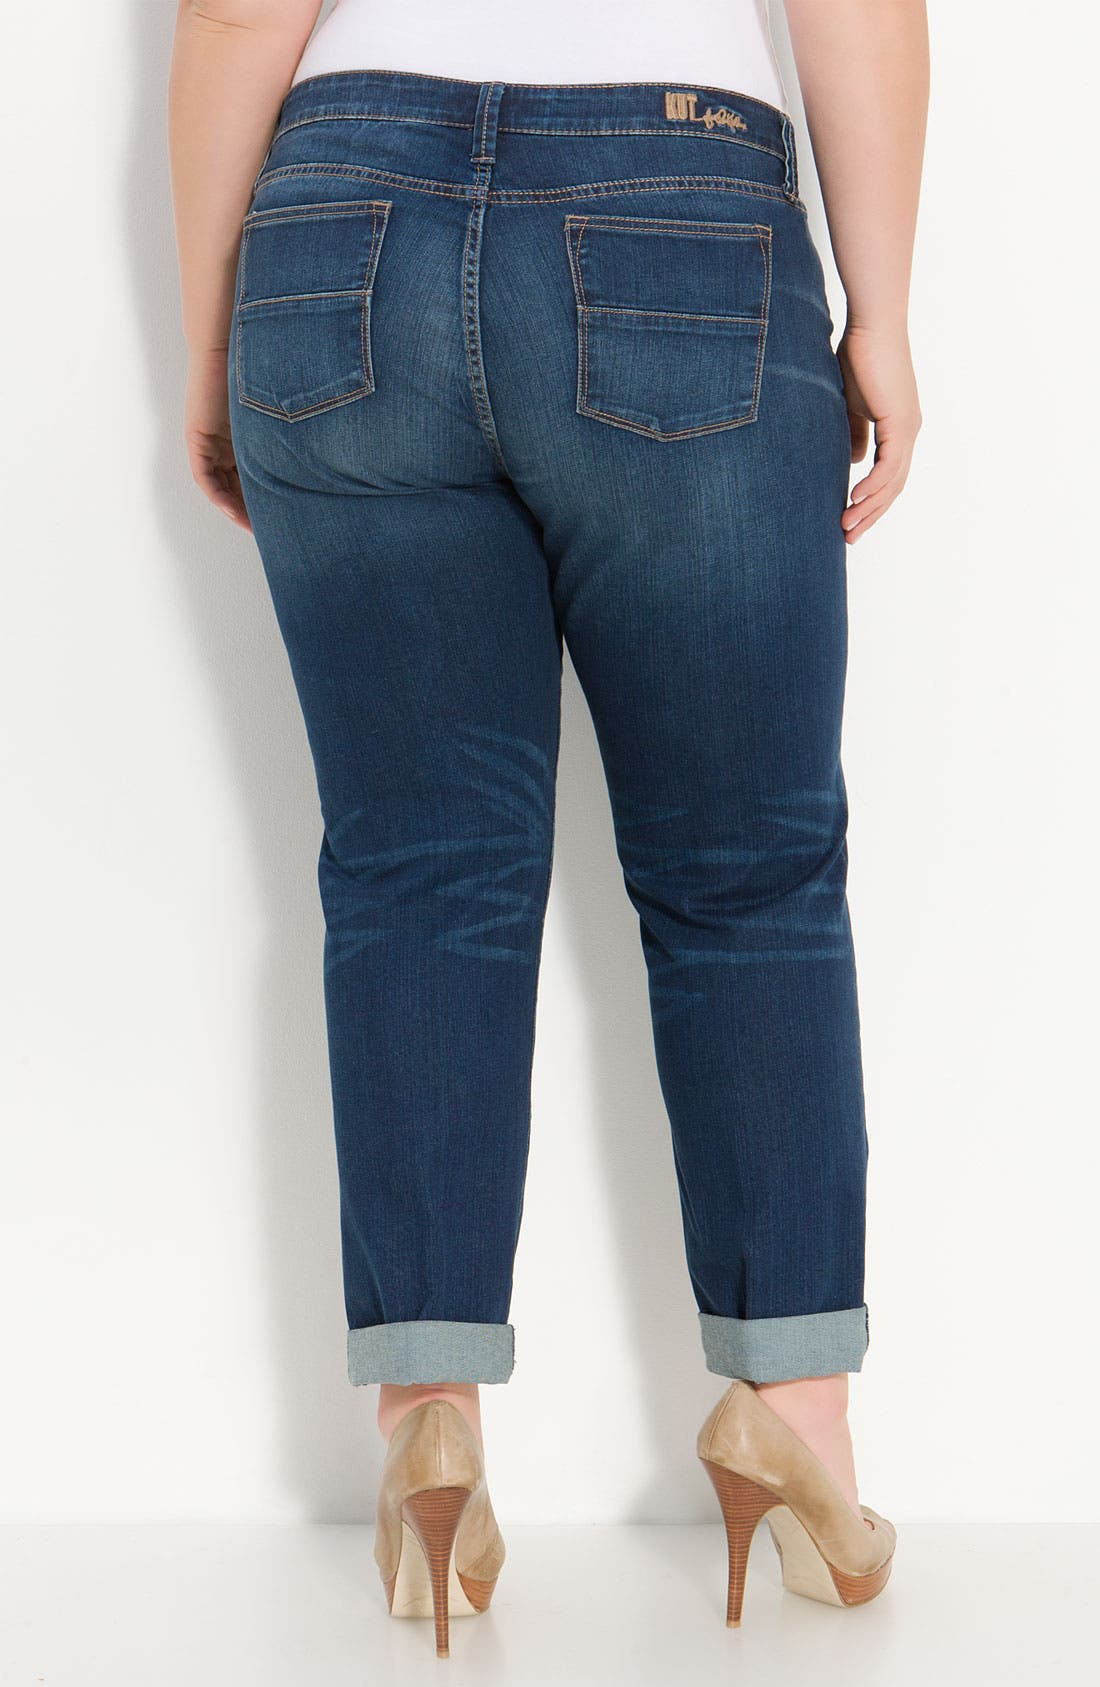 Alternate Image 1 Selected - KUT from the Kloth Crop Boyfriend Jeans (Plus)